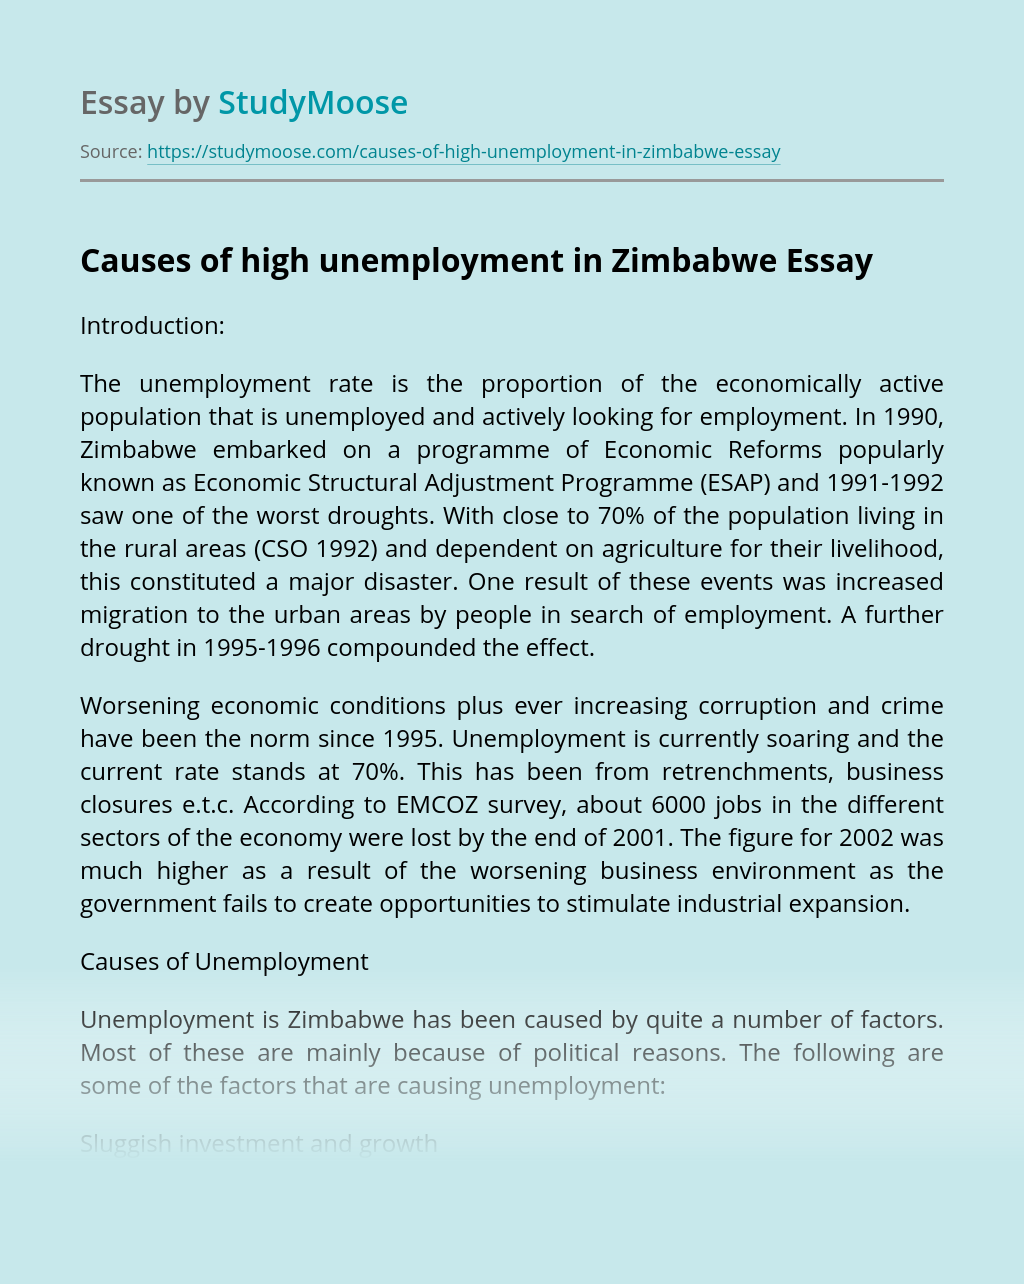 Causes of high unemployment in Zimbabwe